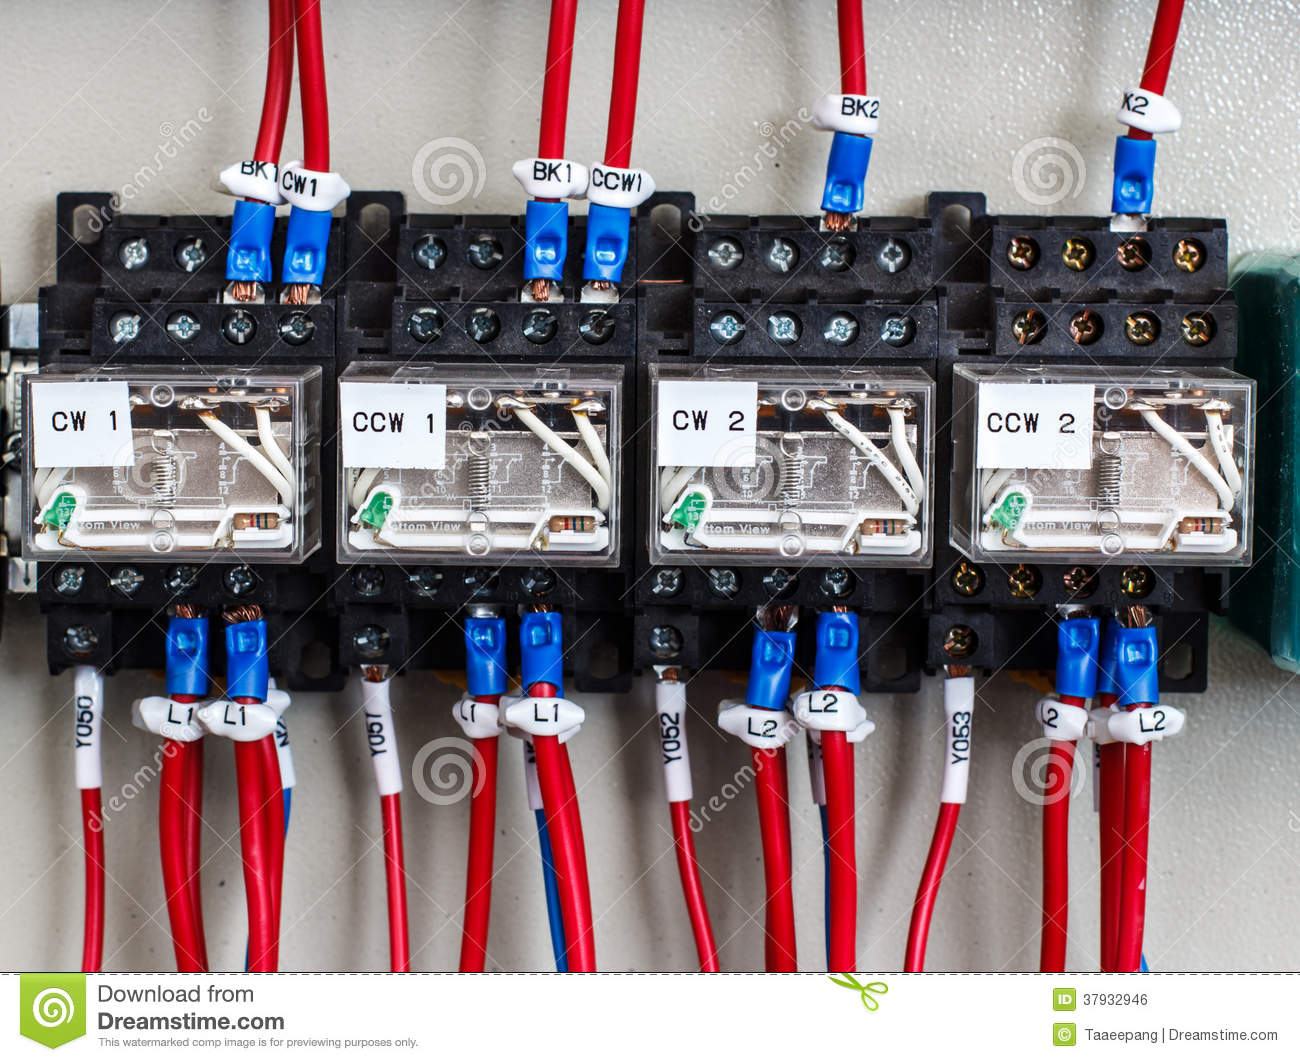 wiring control panel wires electrical circuits sheet industrial factory 37932946 wiring control panel with wires royalty free stock image control panel wiring at fashall.co